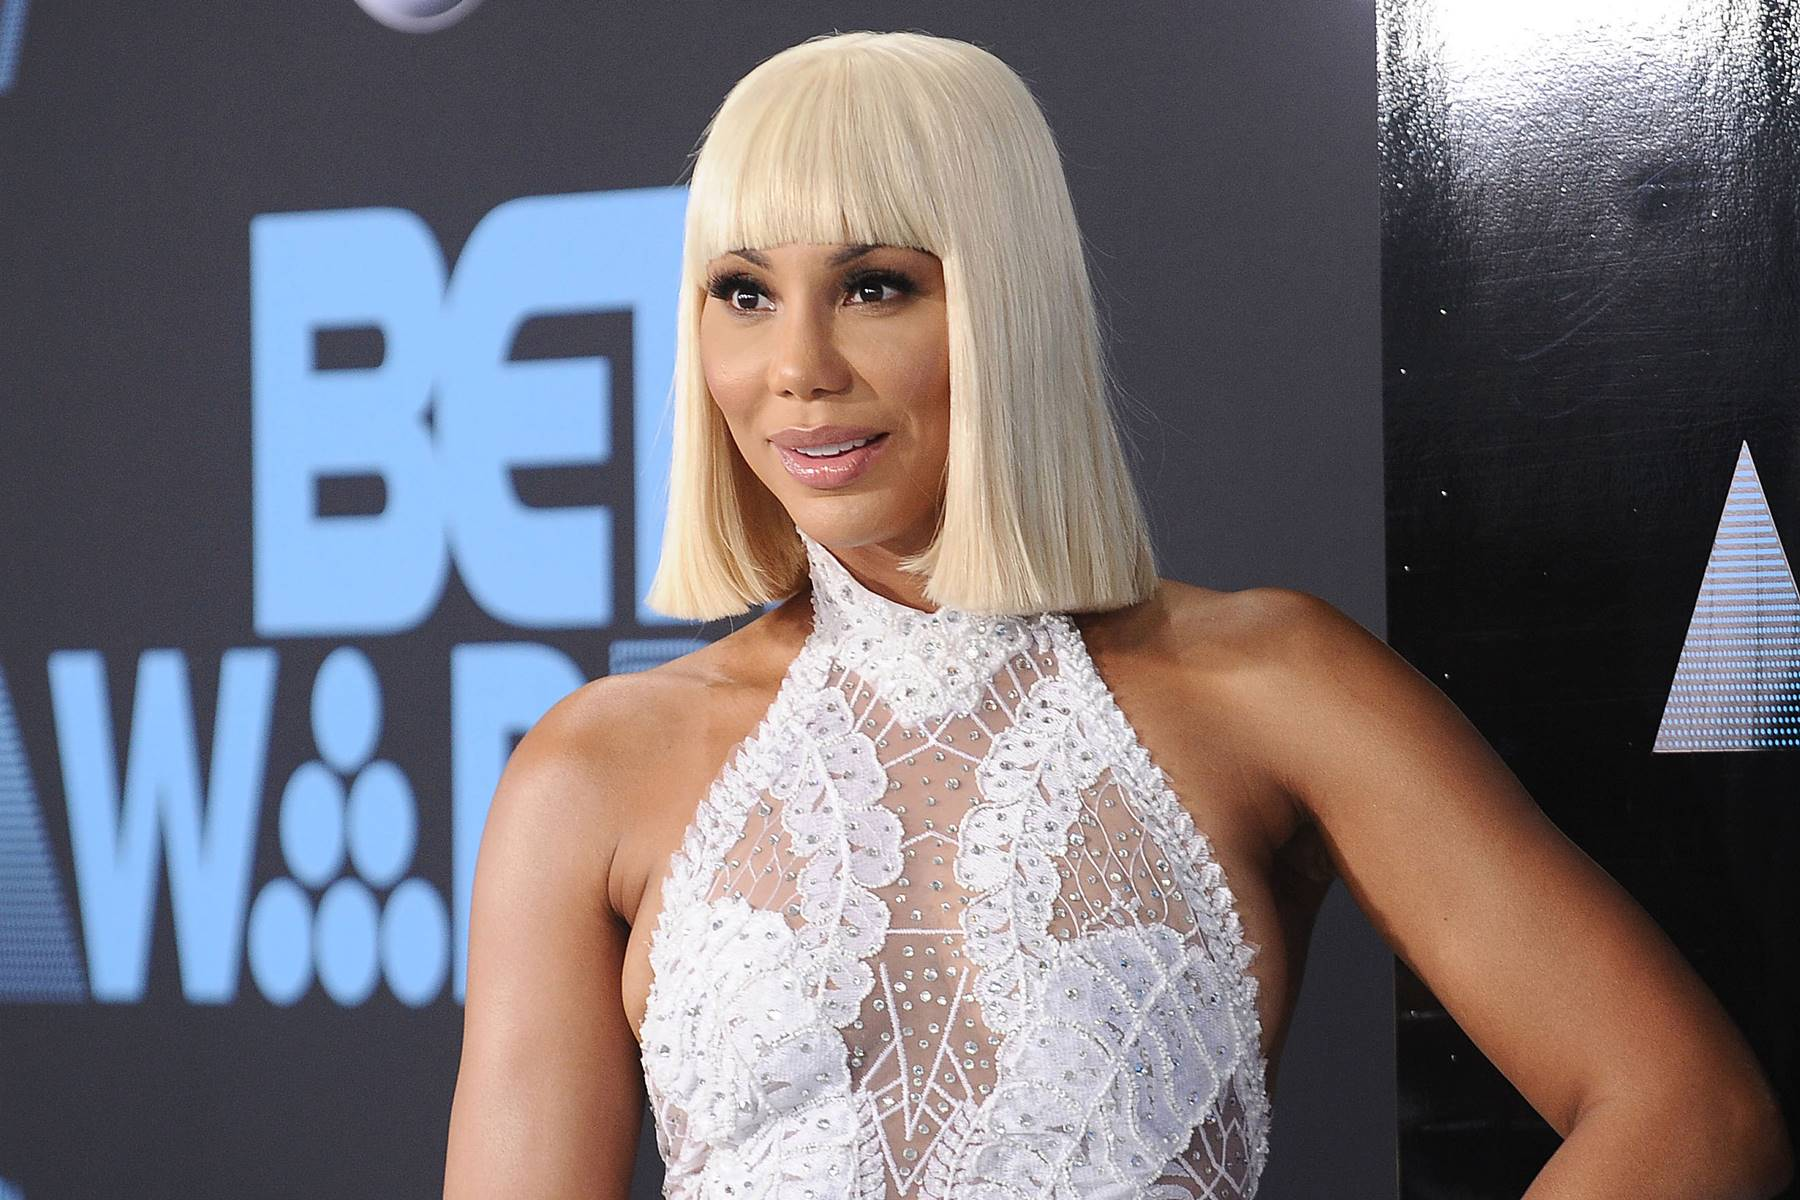 tamar-braxton-dumps-boyfriend-yemi-and-blasts-her-sisters-for-ruining-her-birthday-trinas-wedding-proposal-led-to-these-emotional-videos